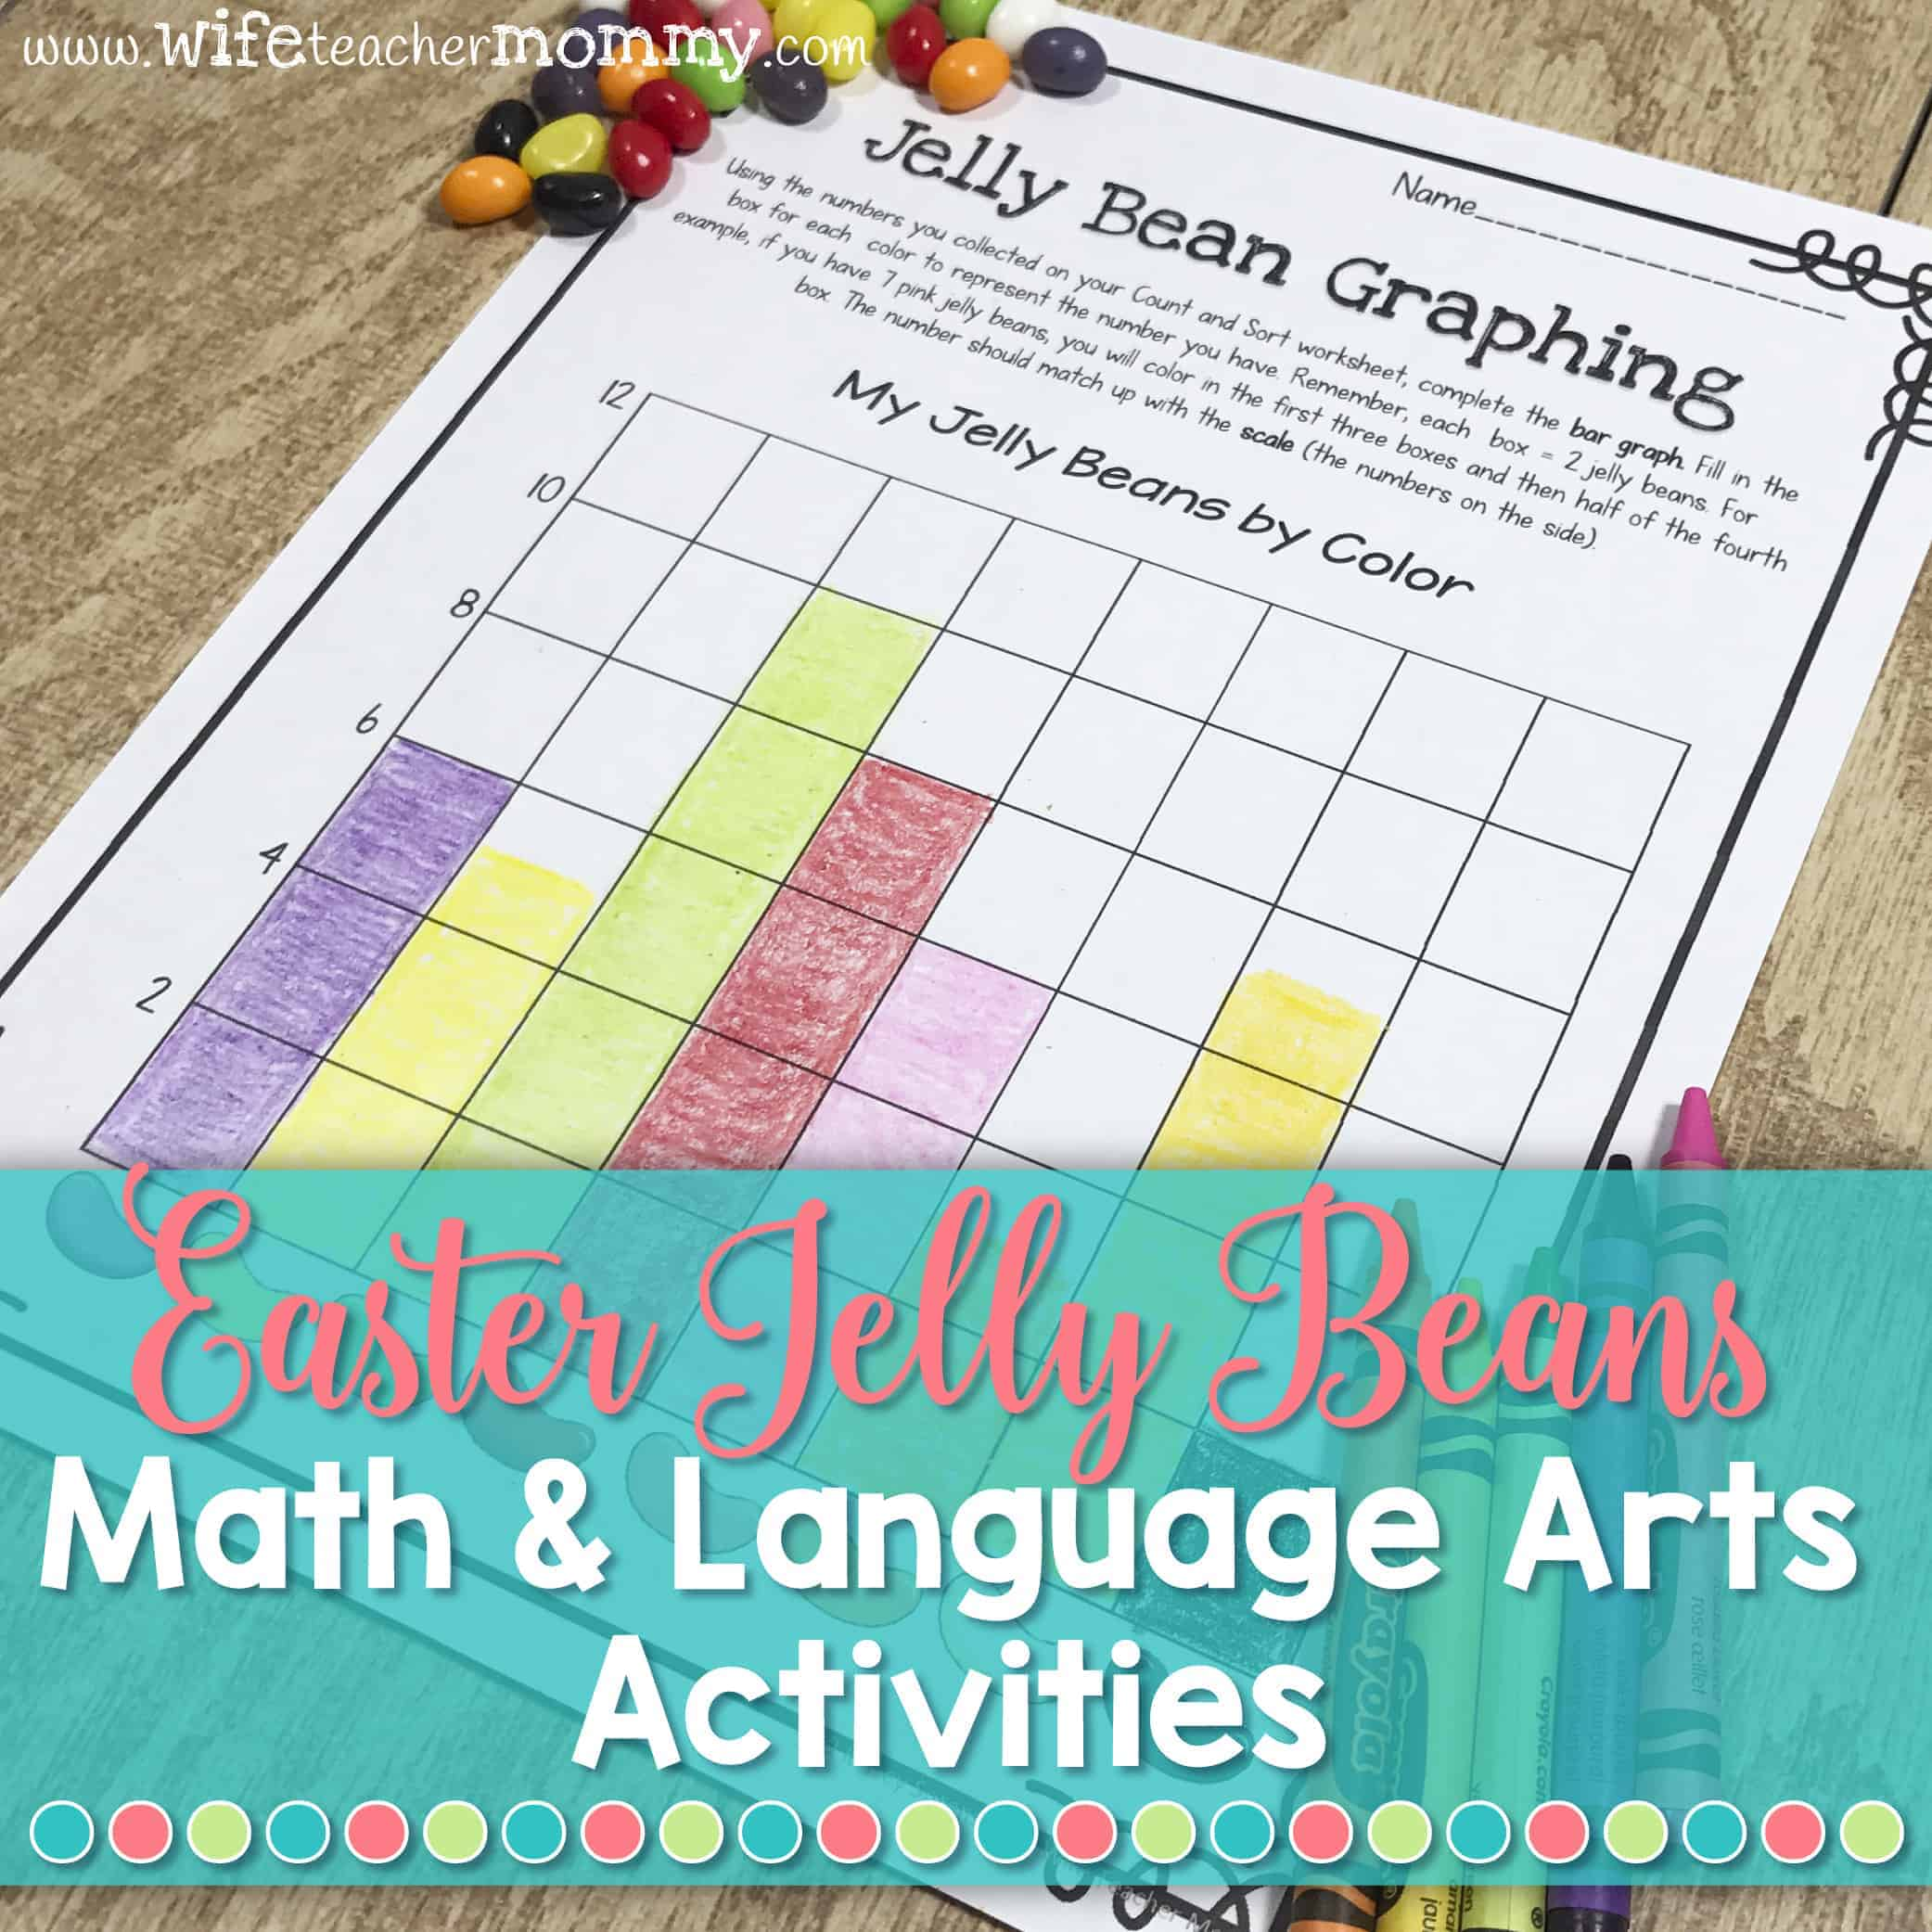 Math & Language Arts with jelly beans is perfect for Easter in the classroom!